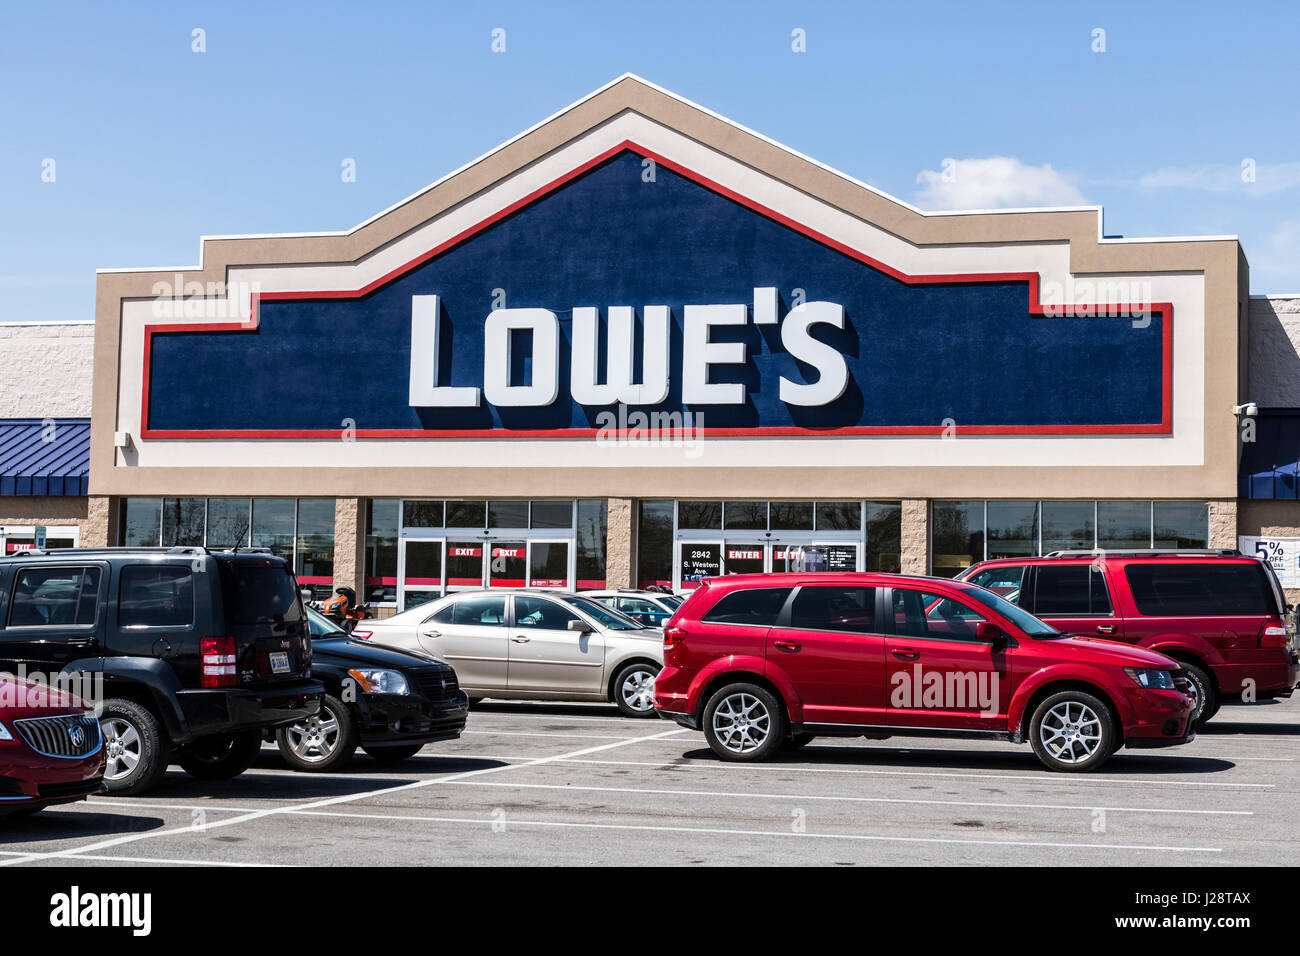 827f0c36bc Marion - Circa April 2017  Lowe s Home Improvement Warehouse. Lowe s  operates retail home improvement